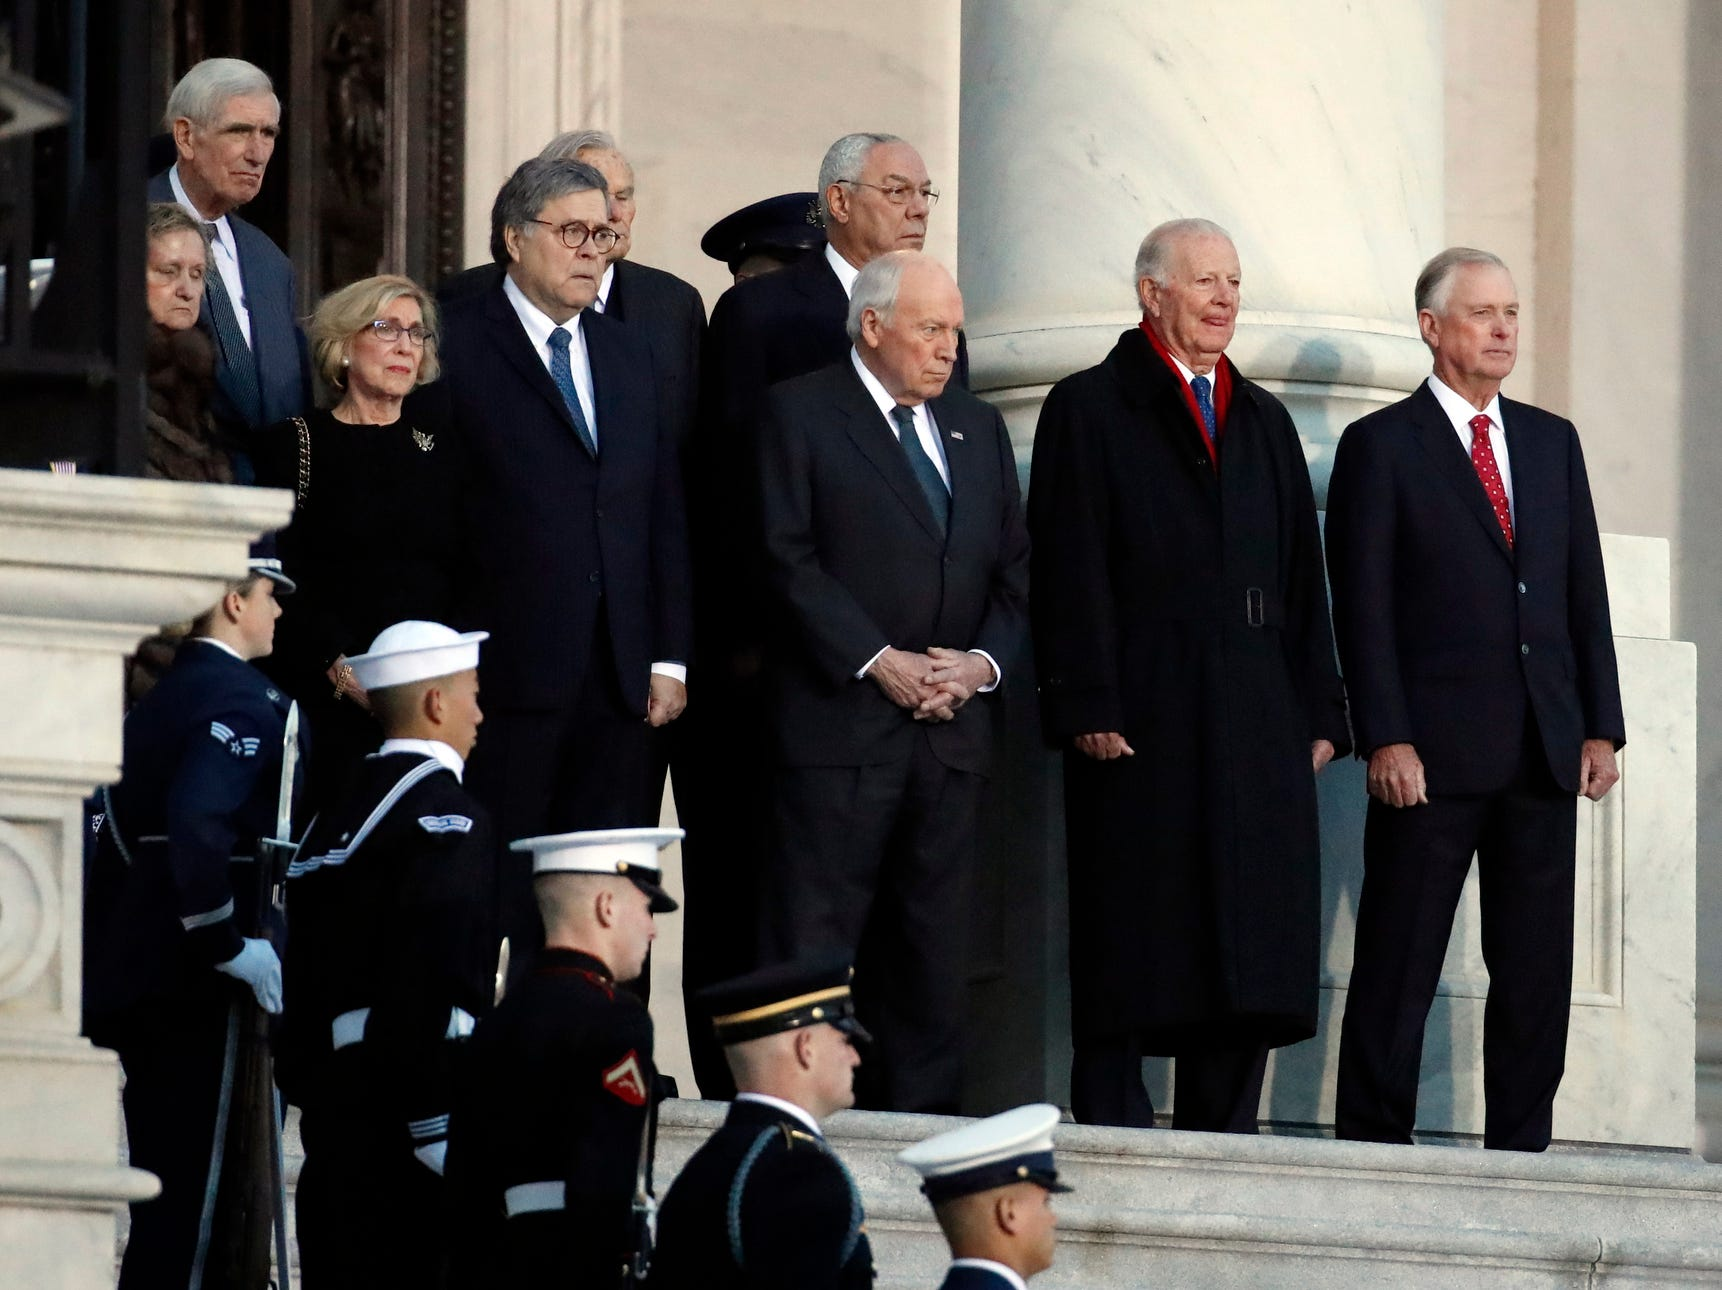 From right, former US Vice President Dan Quayle, James A. Baker III, former Vice President Dick Cheney, former Secretary of State Colin Powell and other wait for the flag-draped casket of former President George H.W. Bush to arrive to lie in state in the rotunda of the U.S. Capitol.